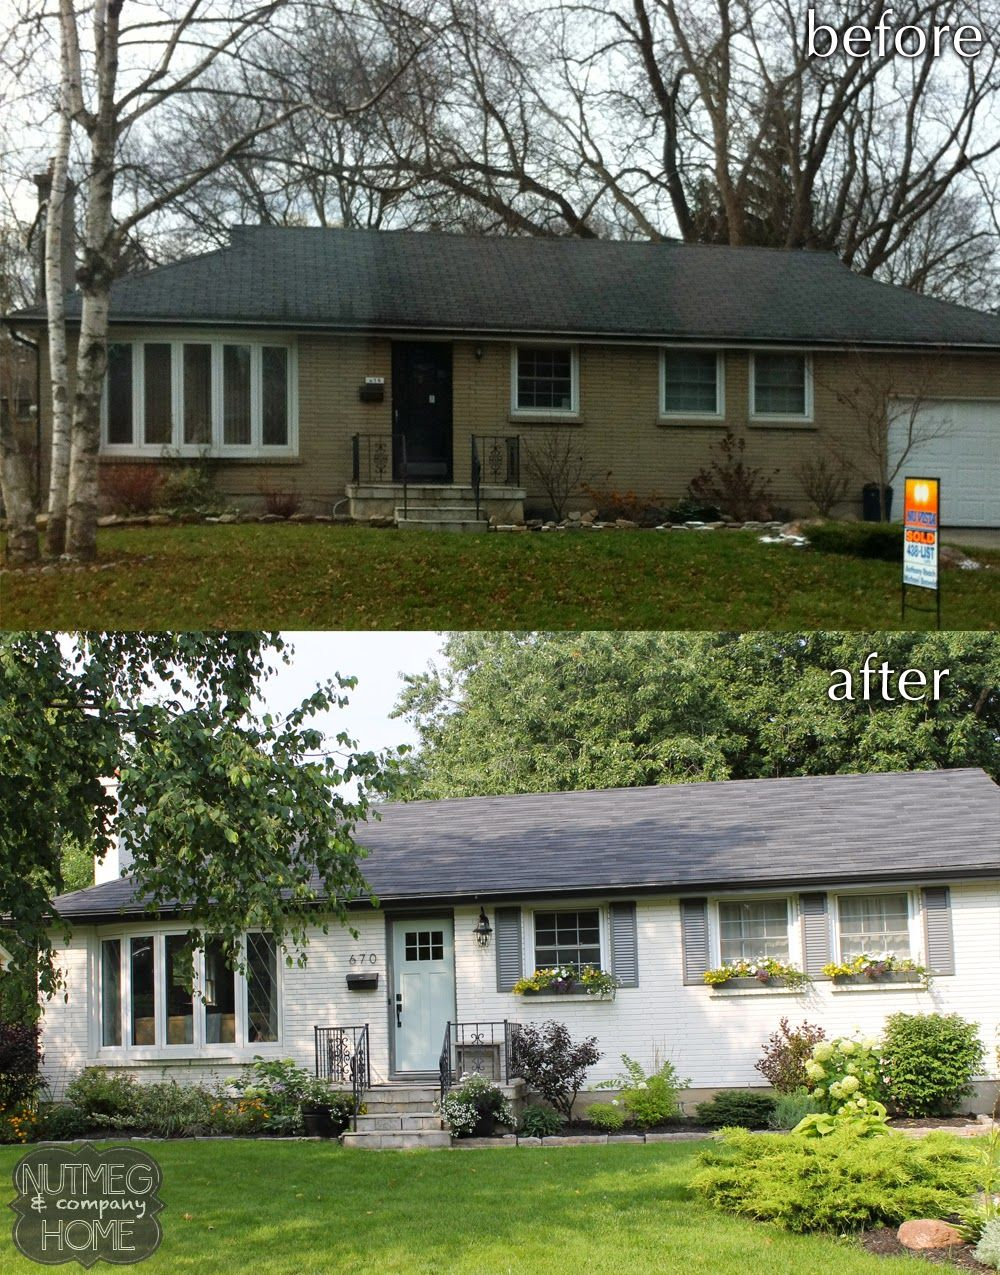 Nutmeg company home before after curb appeal part 2 - How to paint brick house exterior ...